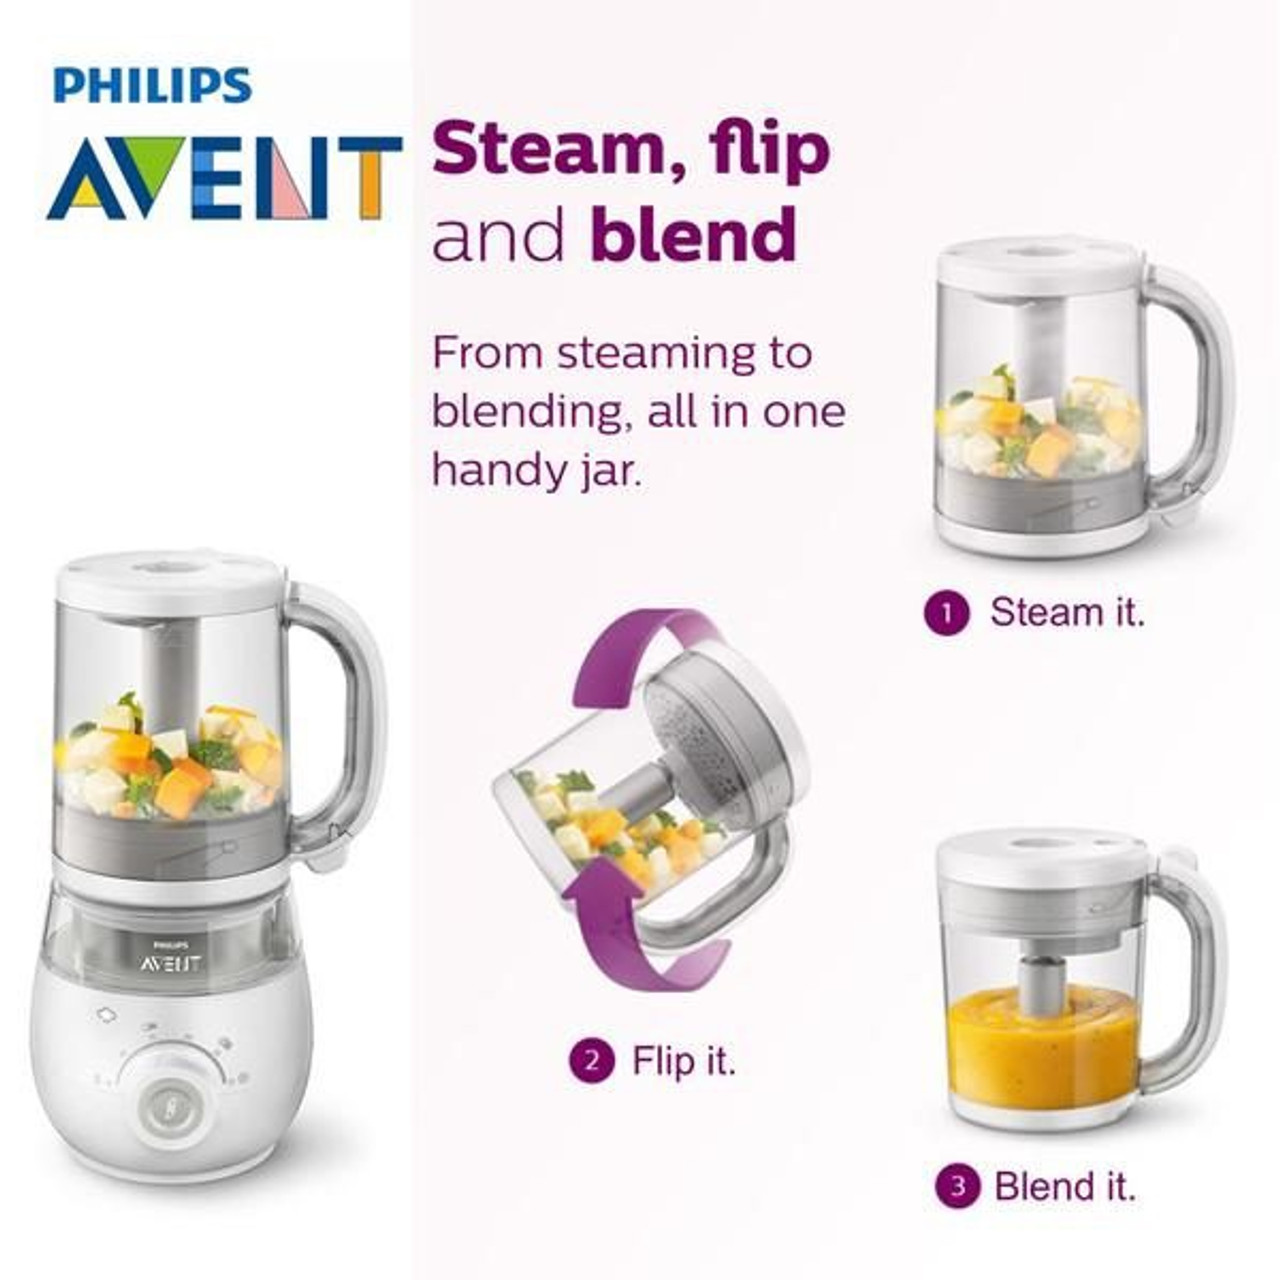 Avent 4 in 1 Healthy Baby Food Maker at Baby Barn Discounts The Avent 4 in 1 healthy baby food maker makes effortless nutritious baby meals.